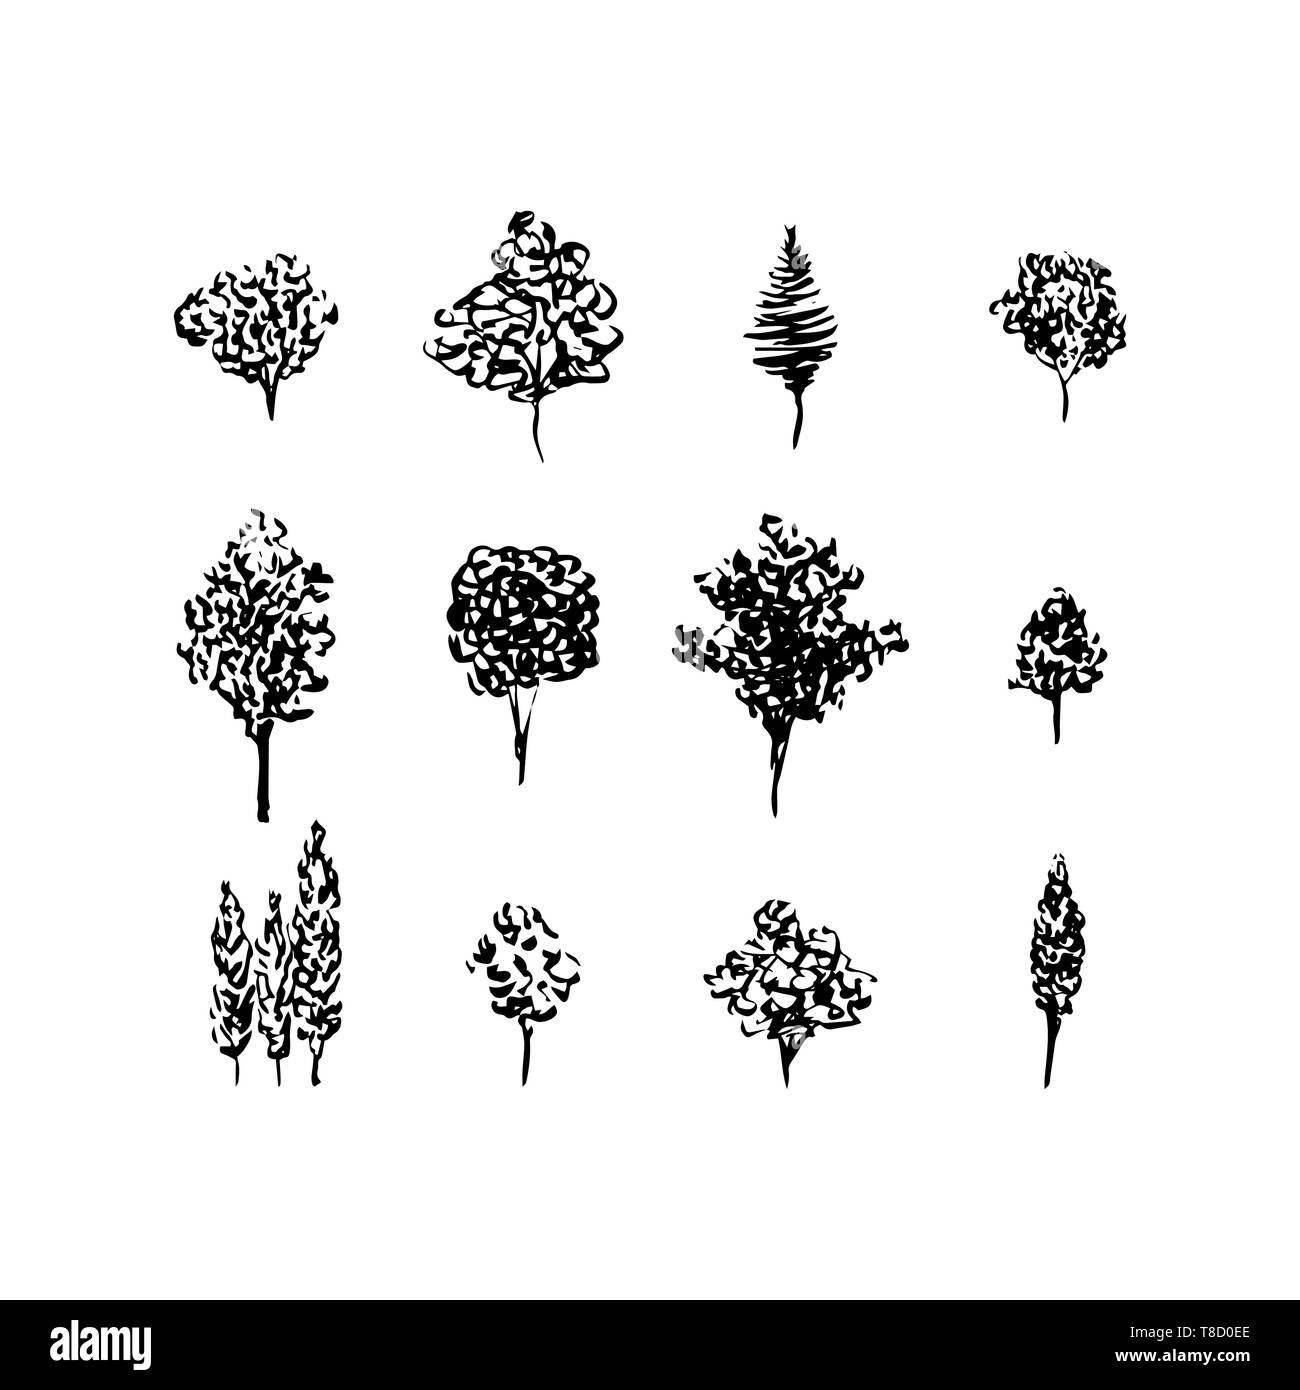 Trees black silhouettes, set isolated on white. Hand drawn ink style. Christmas tree, fruit tree - Stock Vector